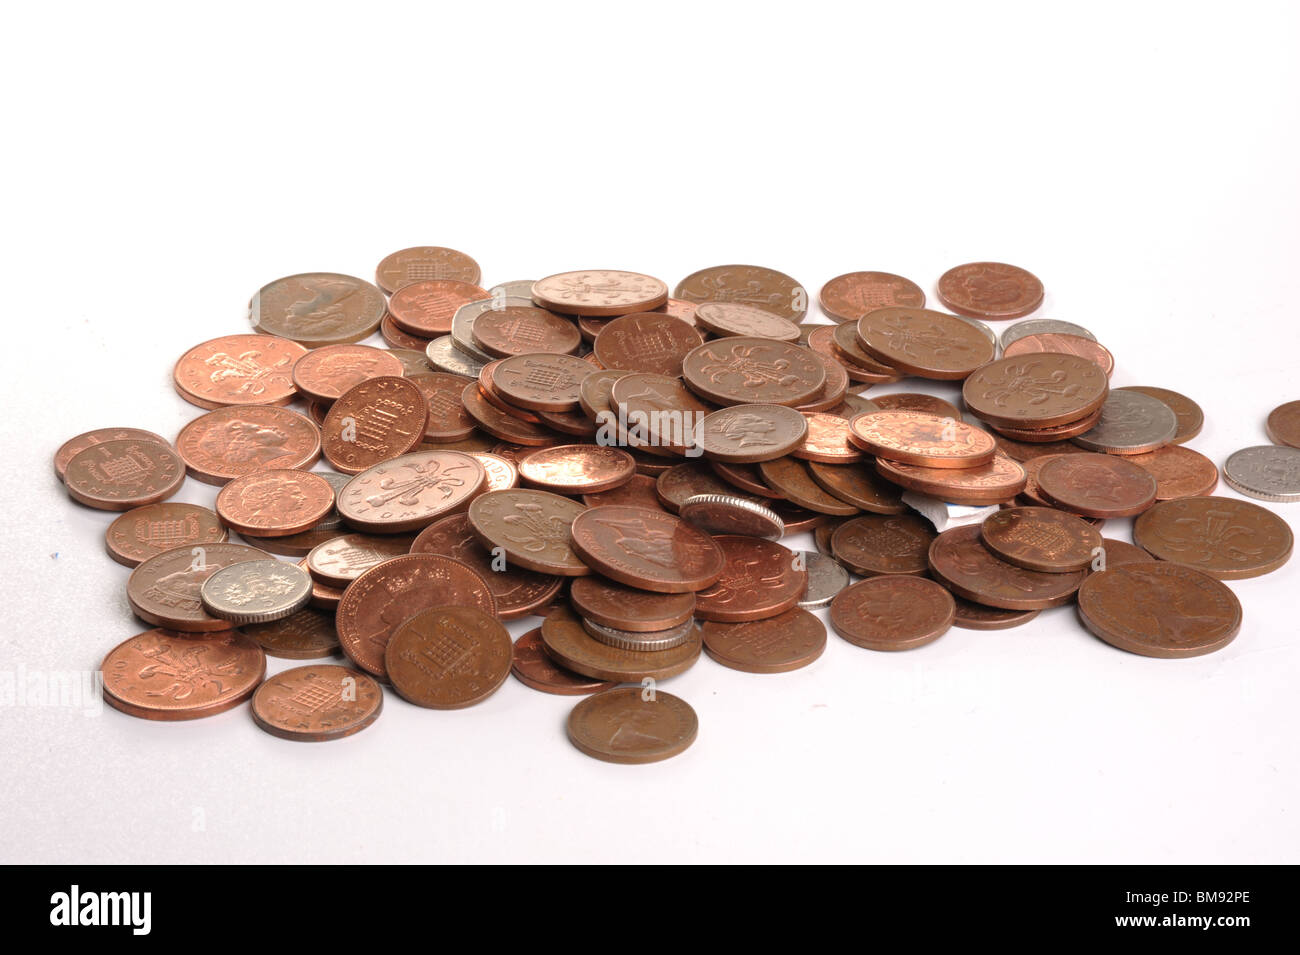 Small change photographed in studio on a plain background - Stock Image